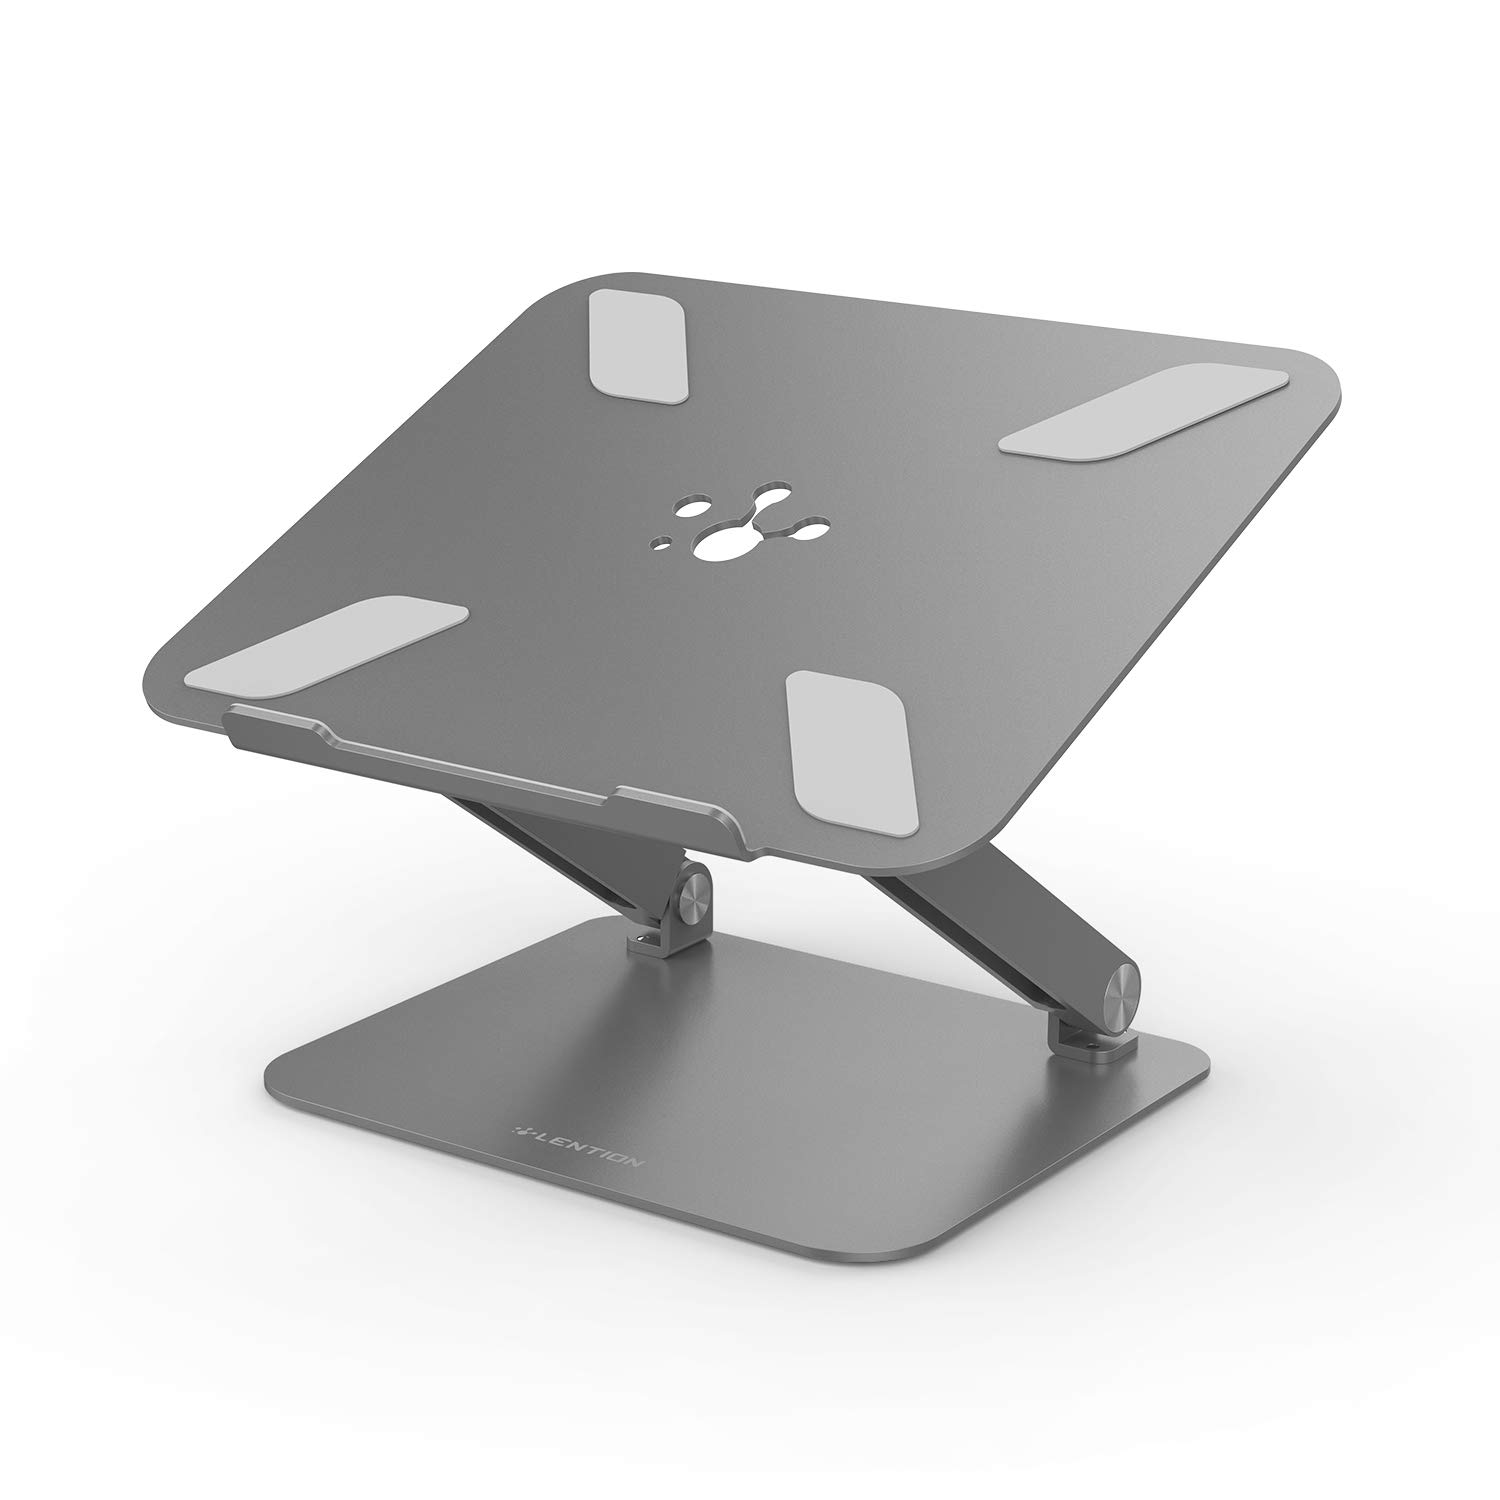 LENTION L5 Adjustable Height with Multiply Angle Laptop Notebook Stand with Adjustable Riser Compatible with MacBook Pro/Air, Surface Laptop and More - Space Gray by LENTION